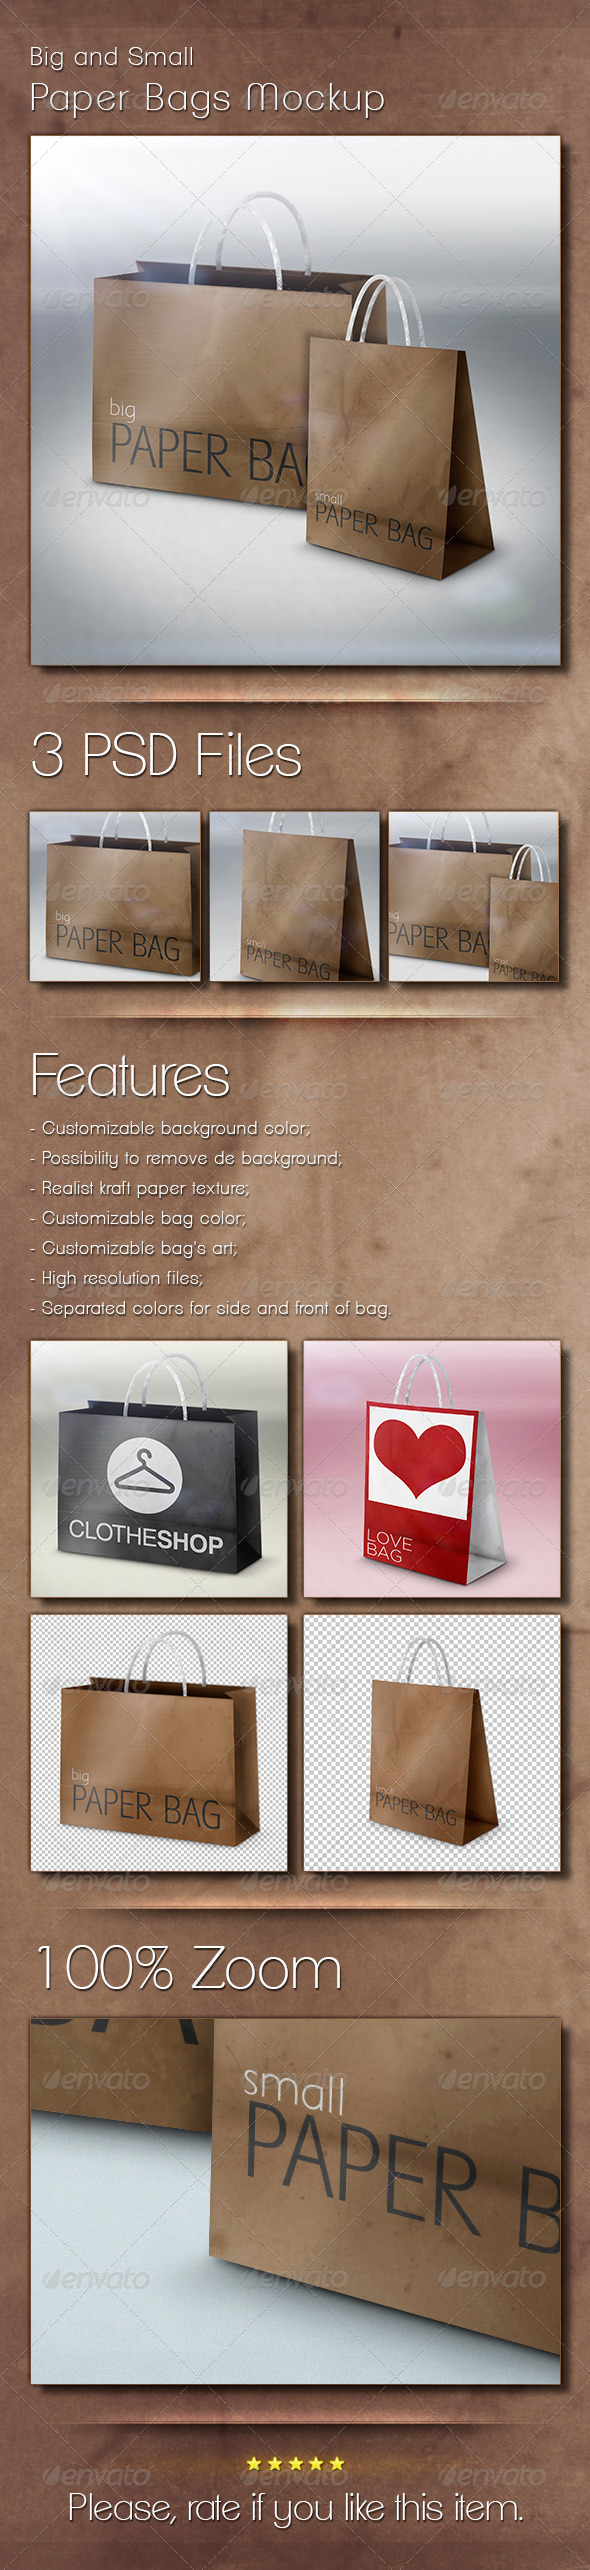 GraphicRiver Big and Small Paper Bags Mockup 5373944